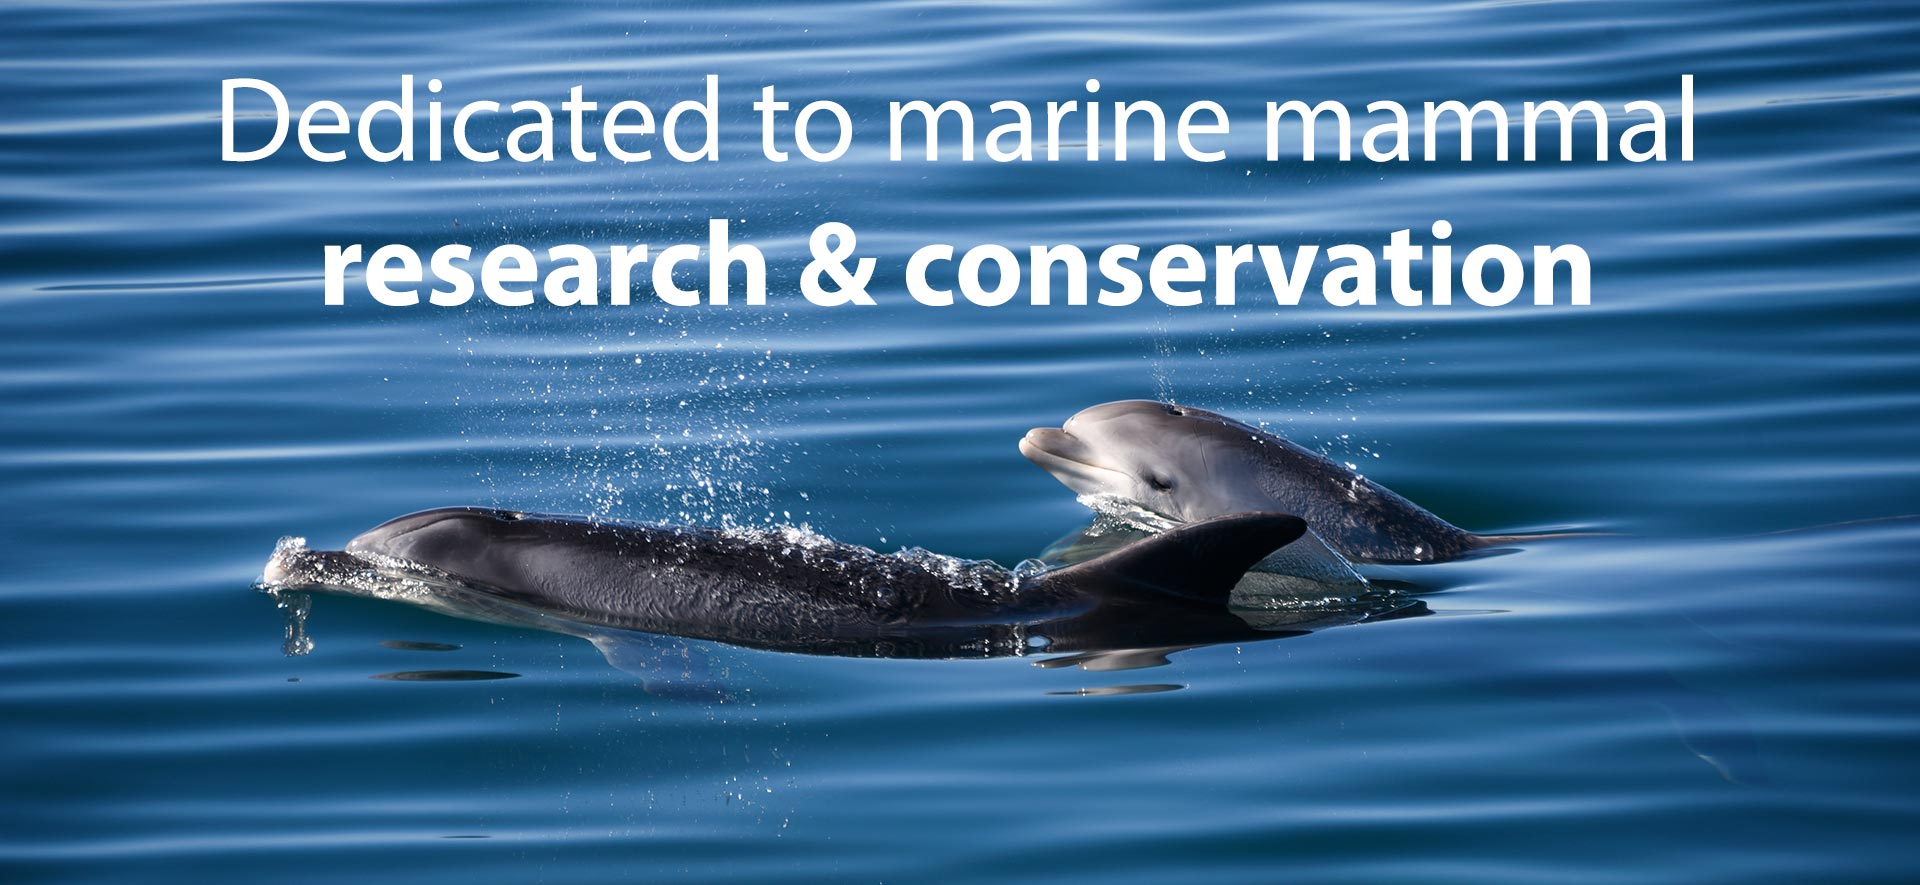 Marine mammal research and conservation